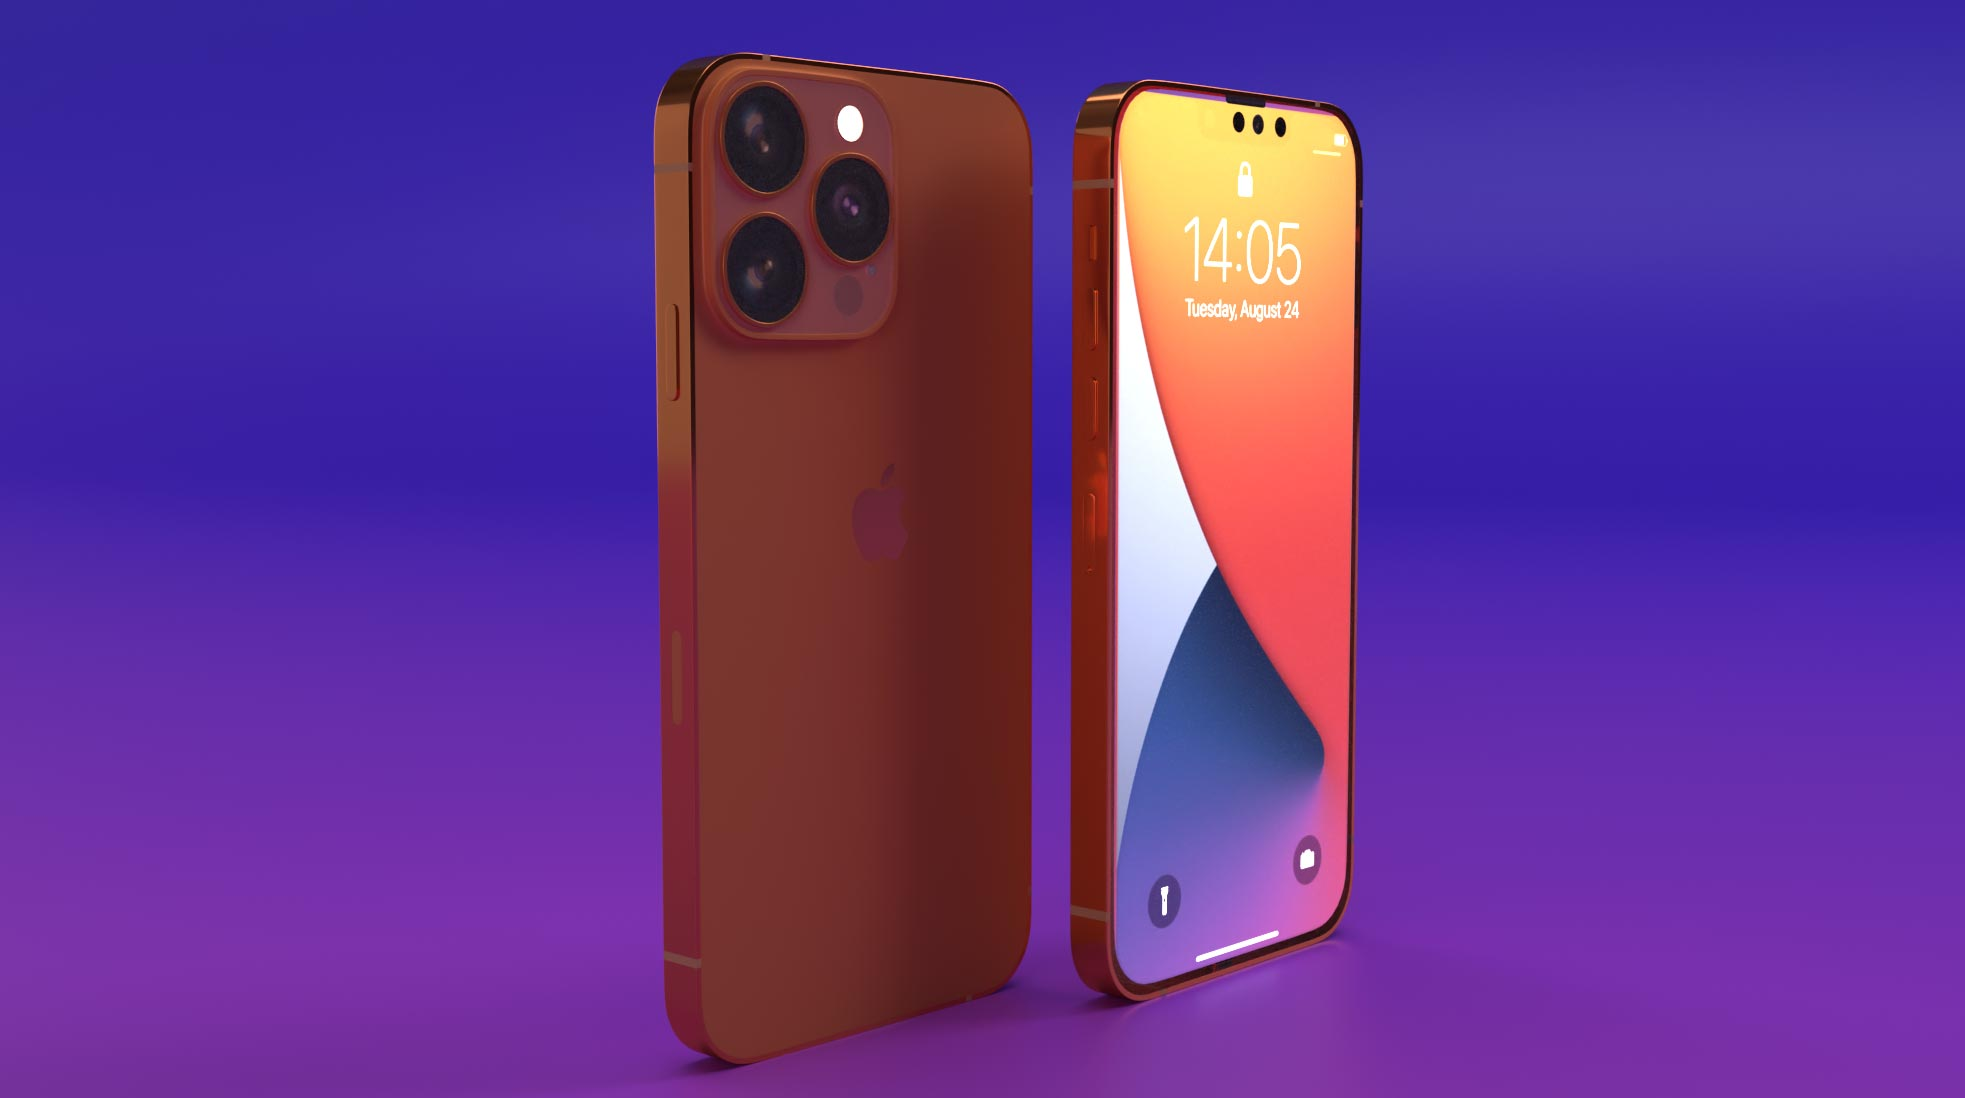 Is this what the iPhone 13 Pro Max will look like? 3D-model by ANdrewsss / Sketchfab (CC BY 4.0)